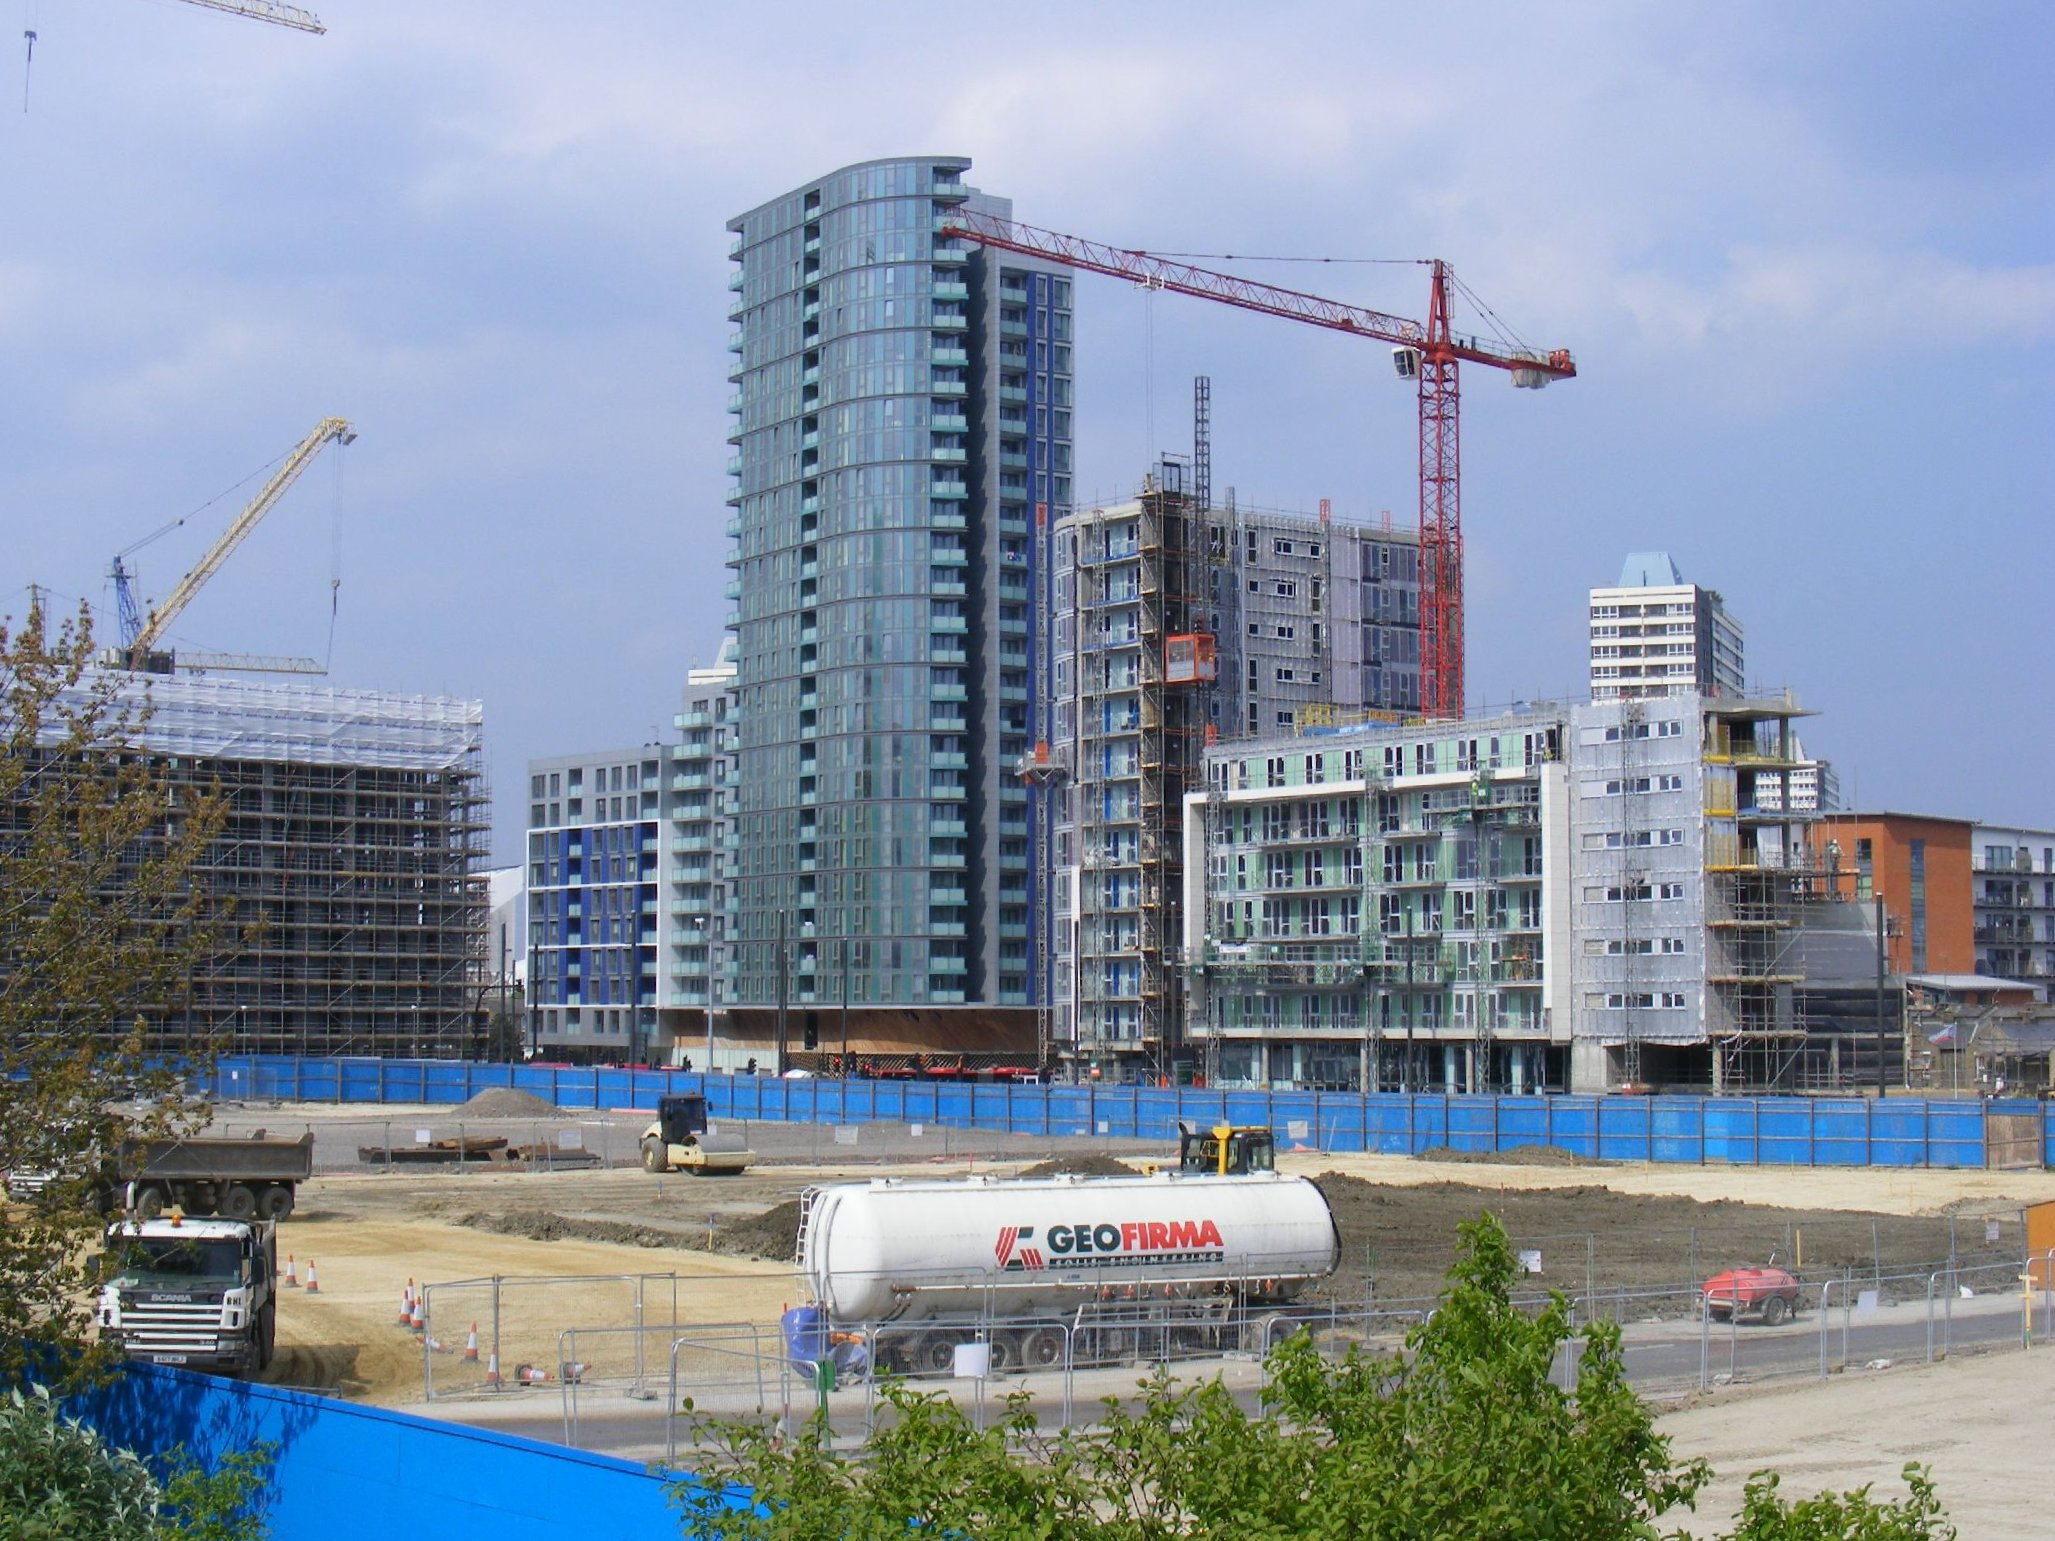 New construction at Stratford High Street, London East End, in advance of 2012 Olympics. Photo taken sludgegulper, CC BY-SA 2.0